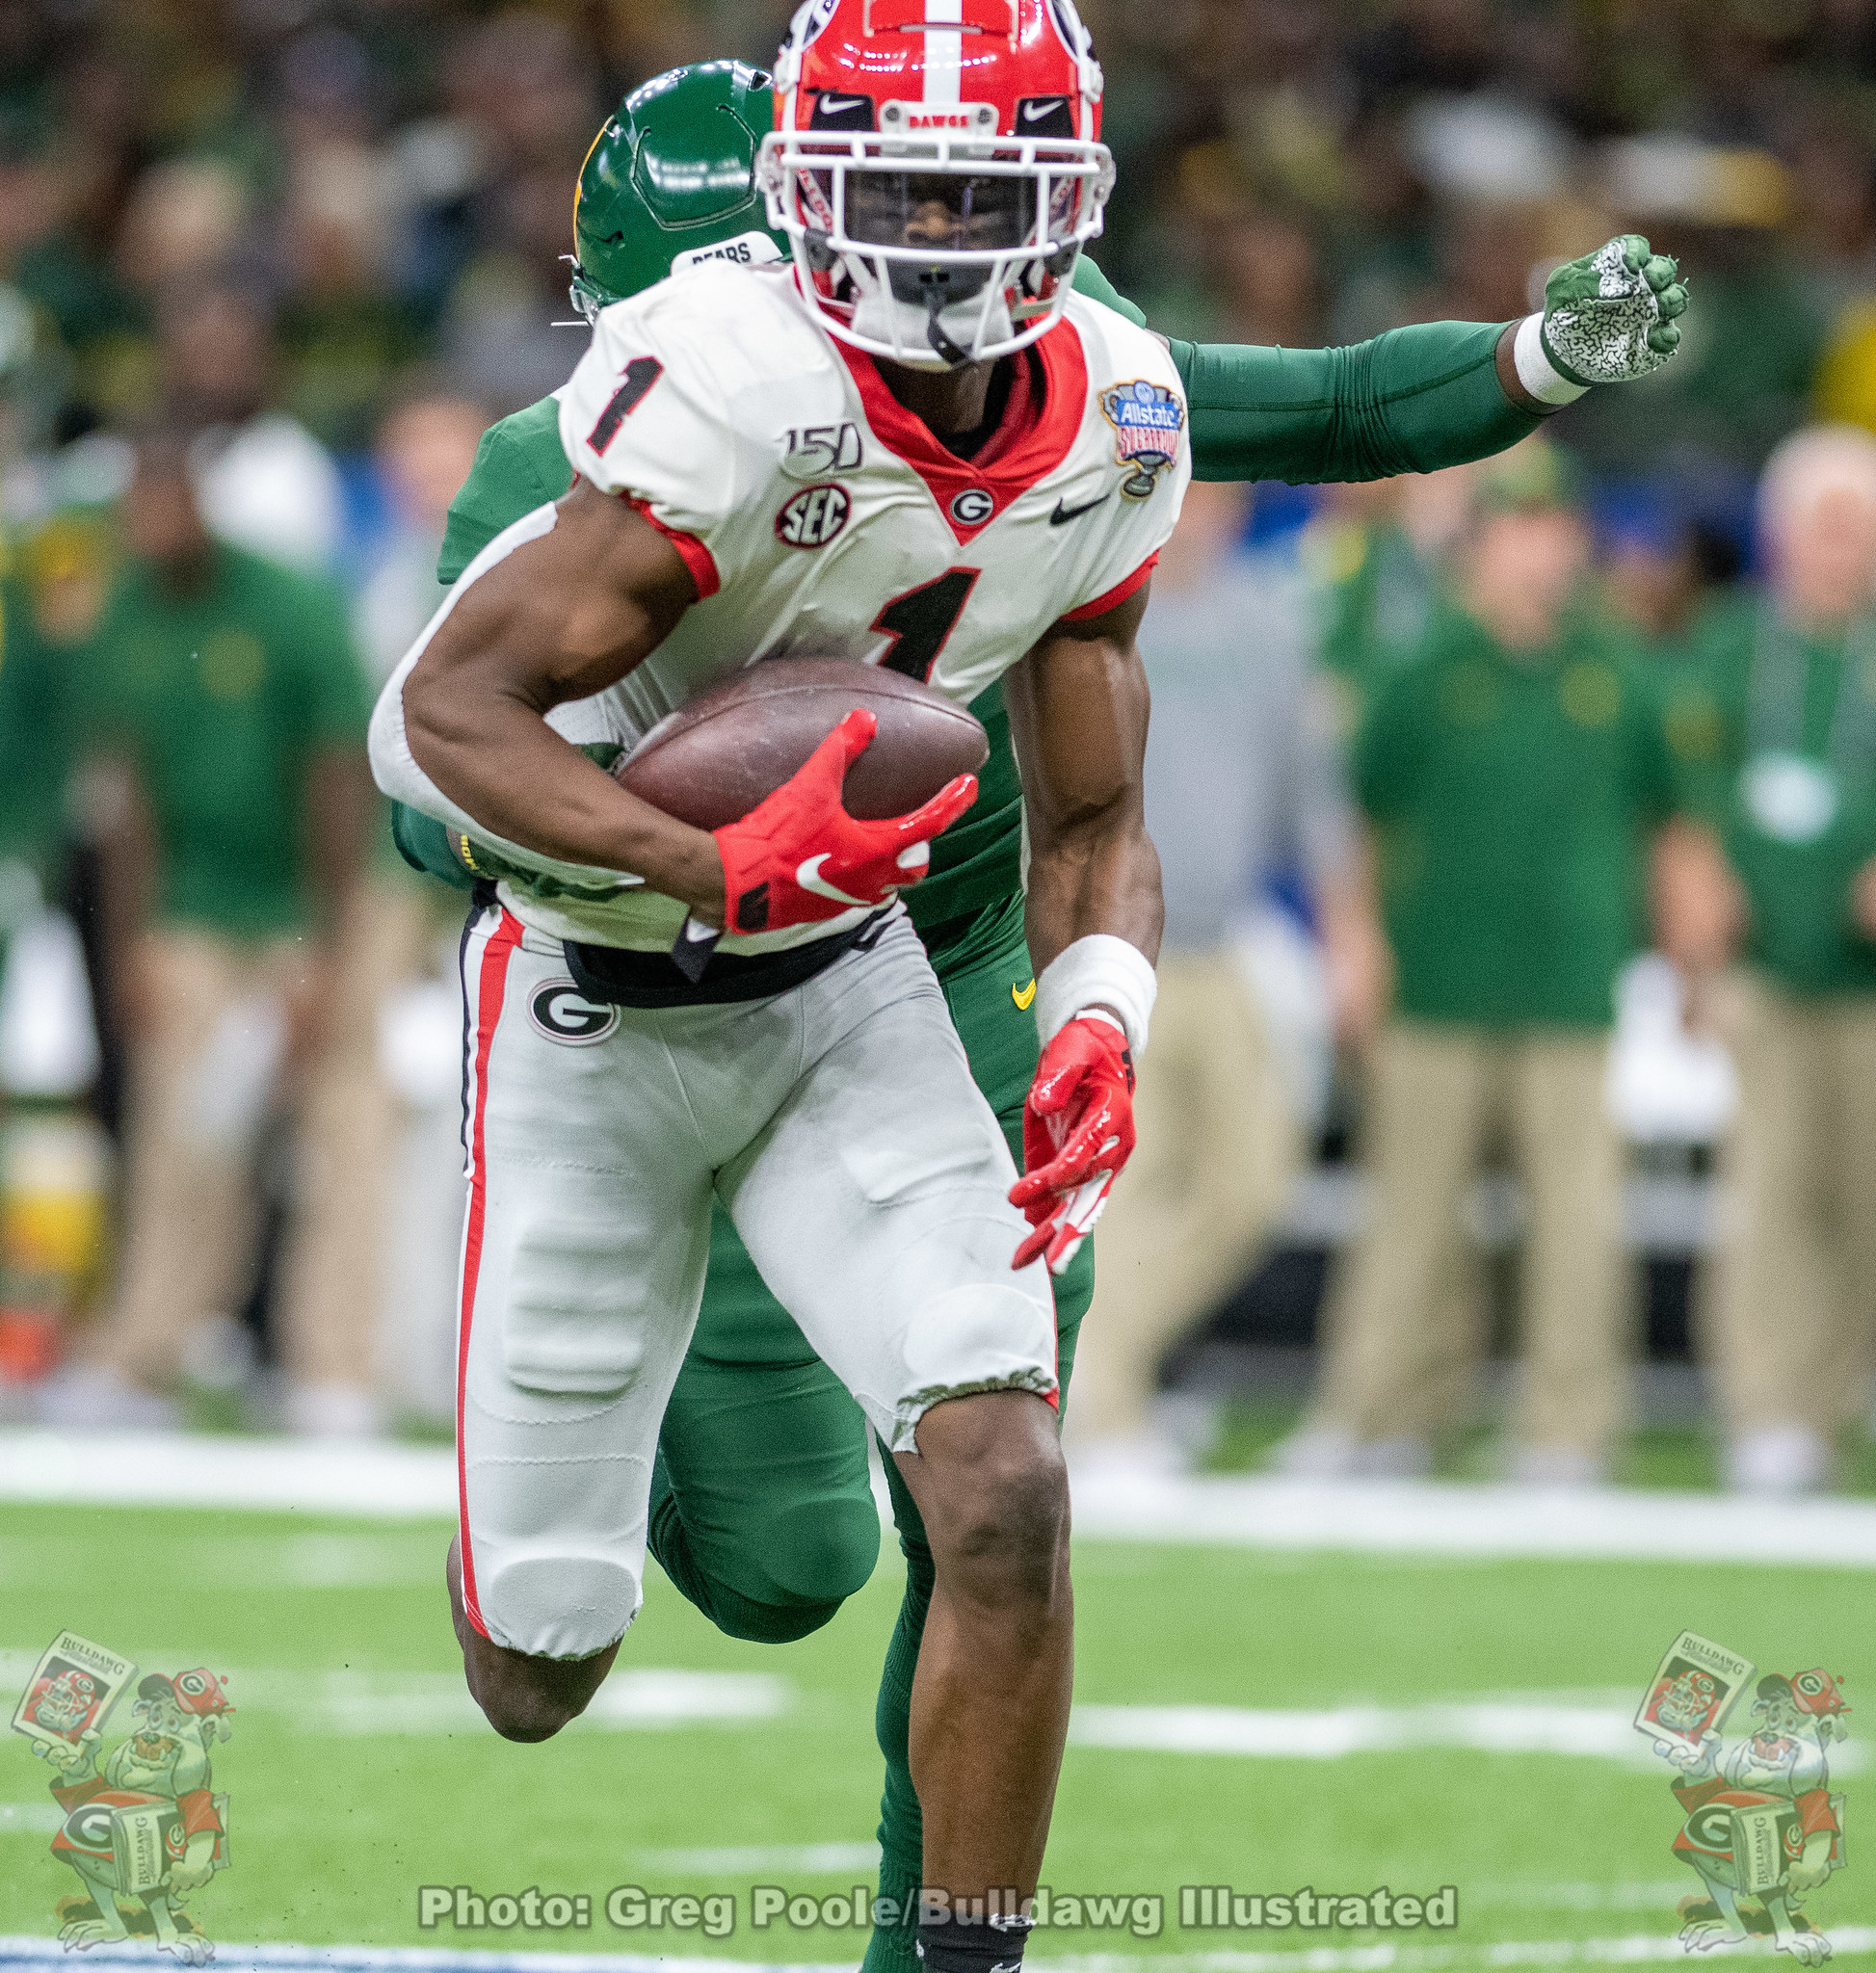 George Pickens (1) - 2020 Sugar Bowl - Georgia vs. Baylor 2020 - First Quarter